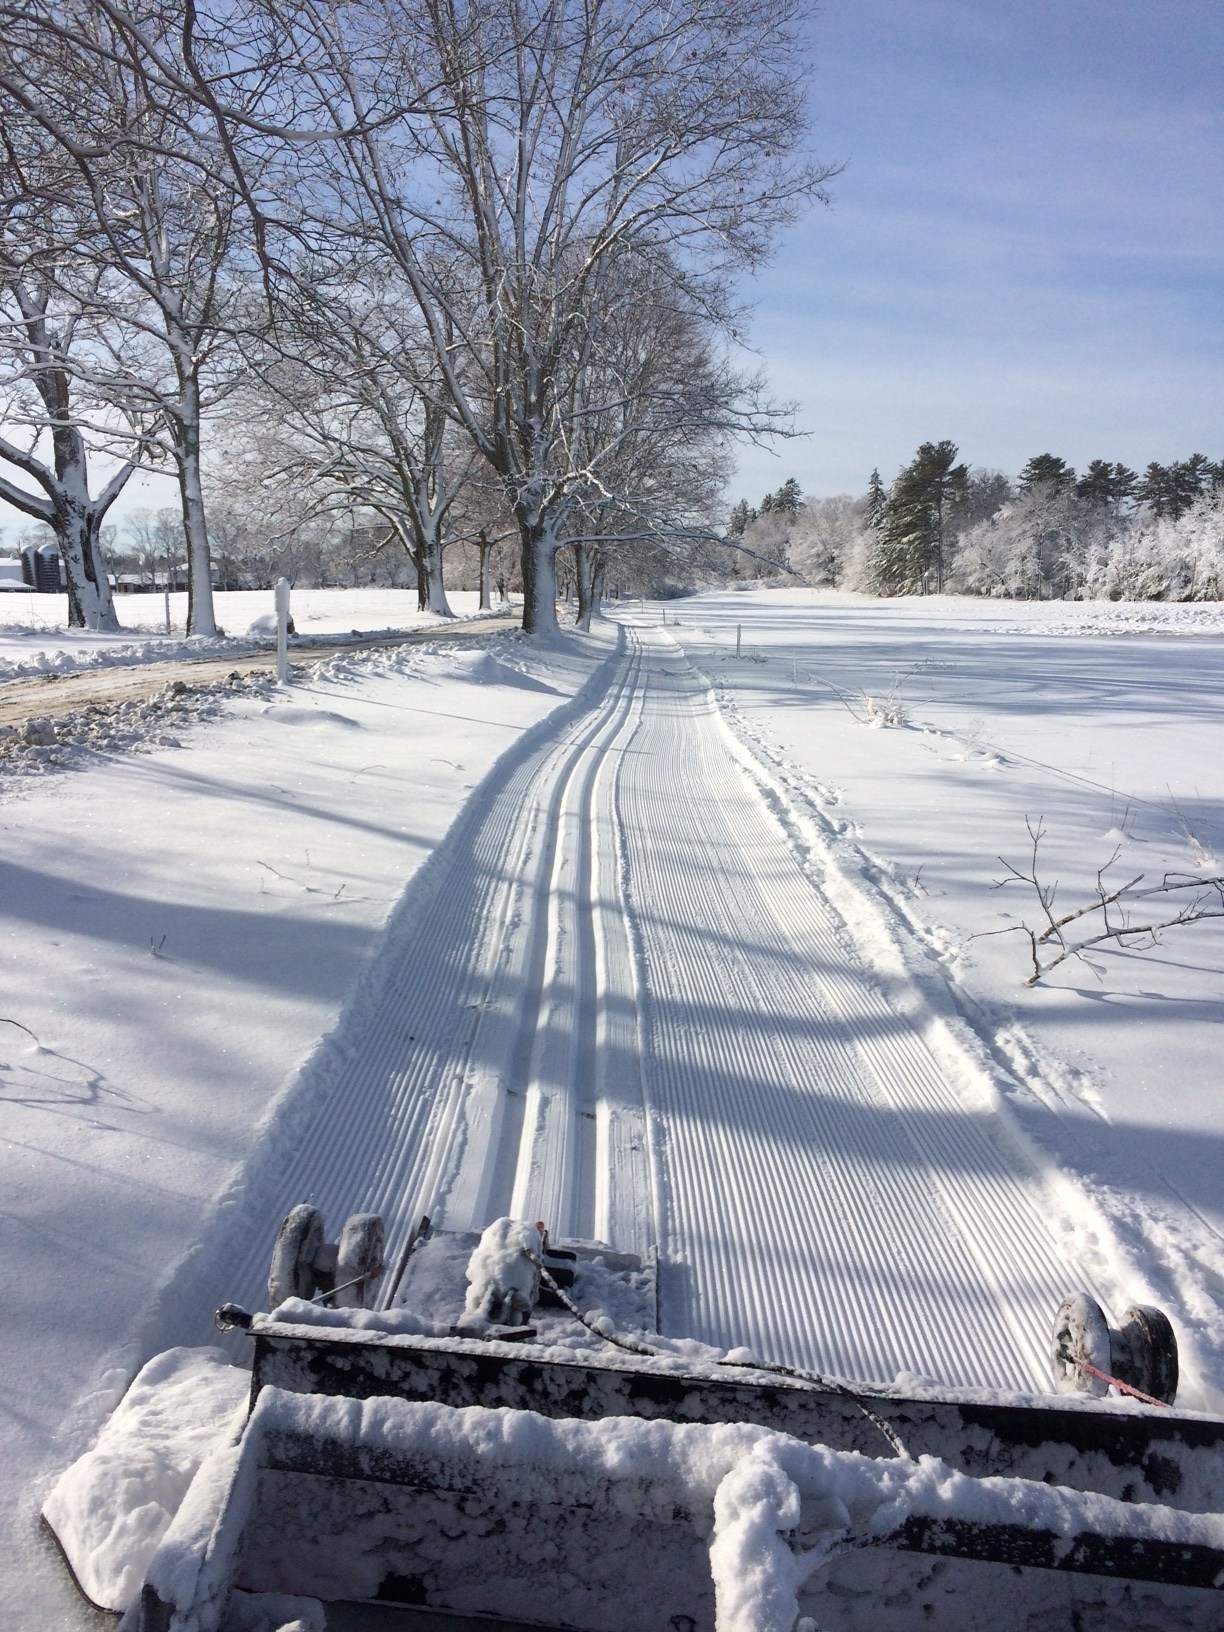 Appleton Farms- a view looking back at the YTS Ginzu groomer and the freshly groomed trail.